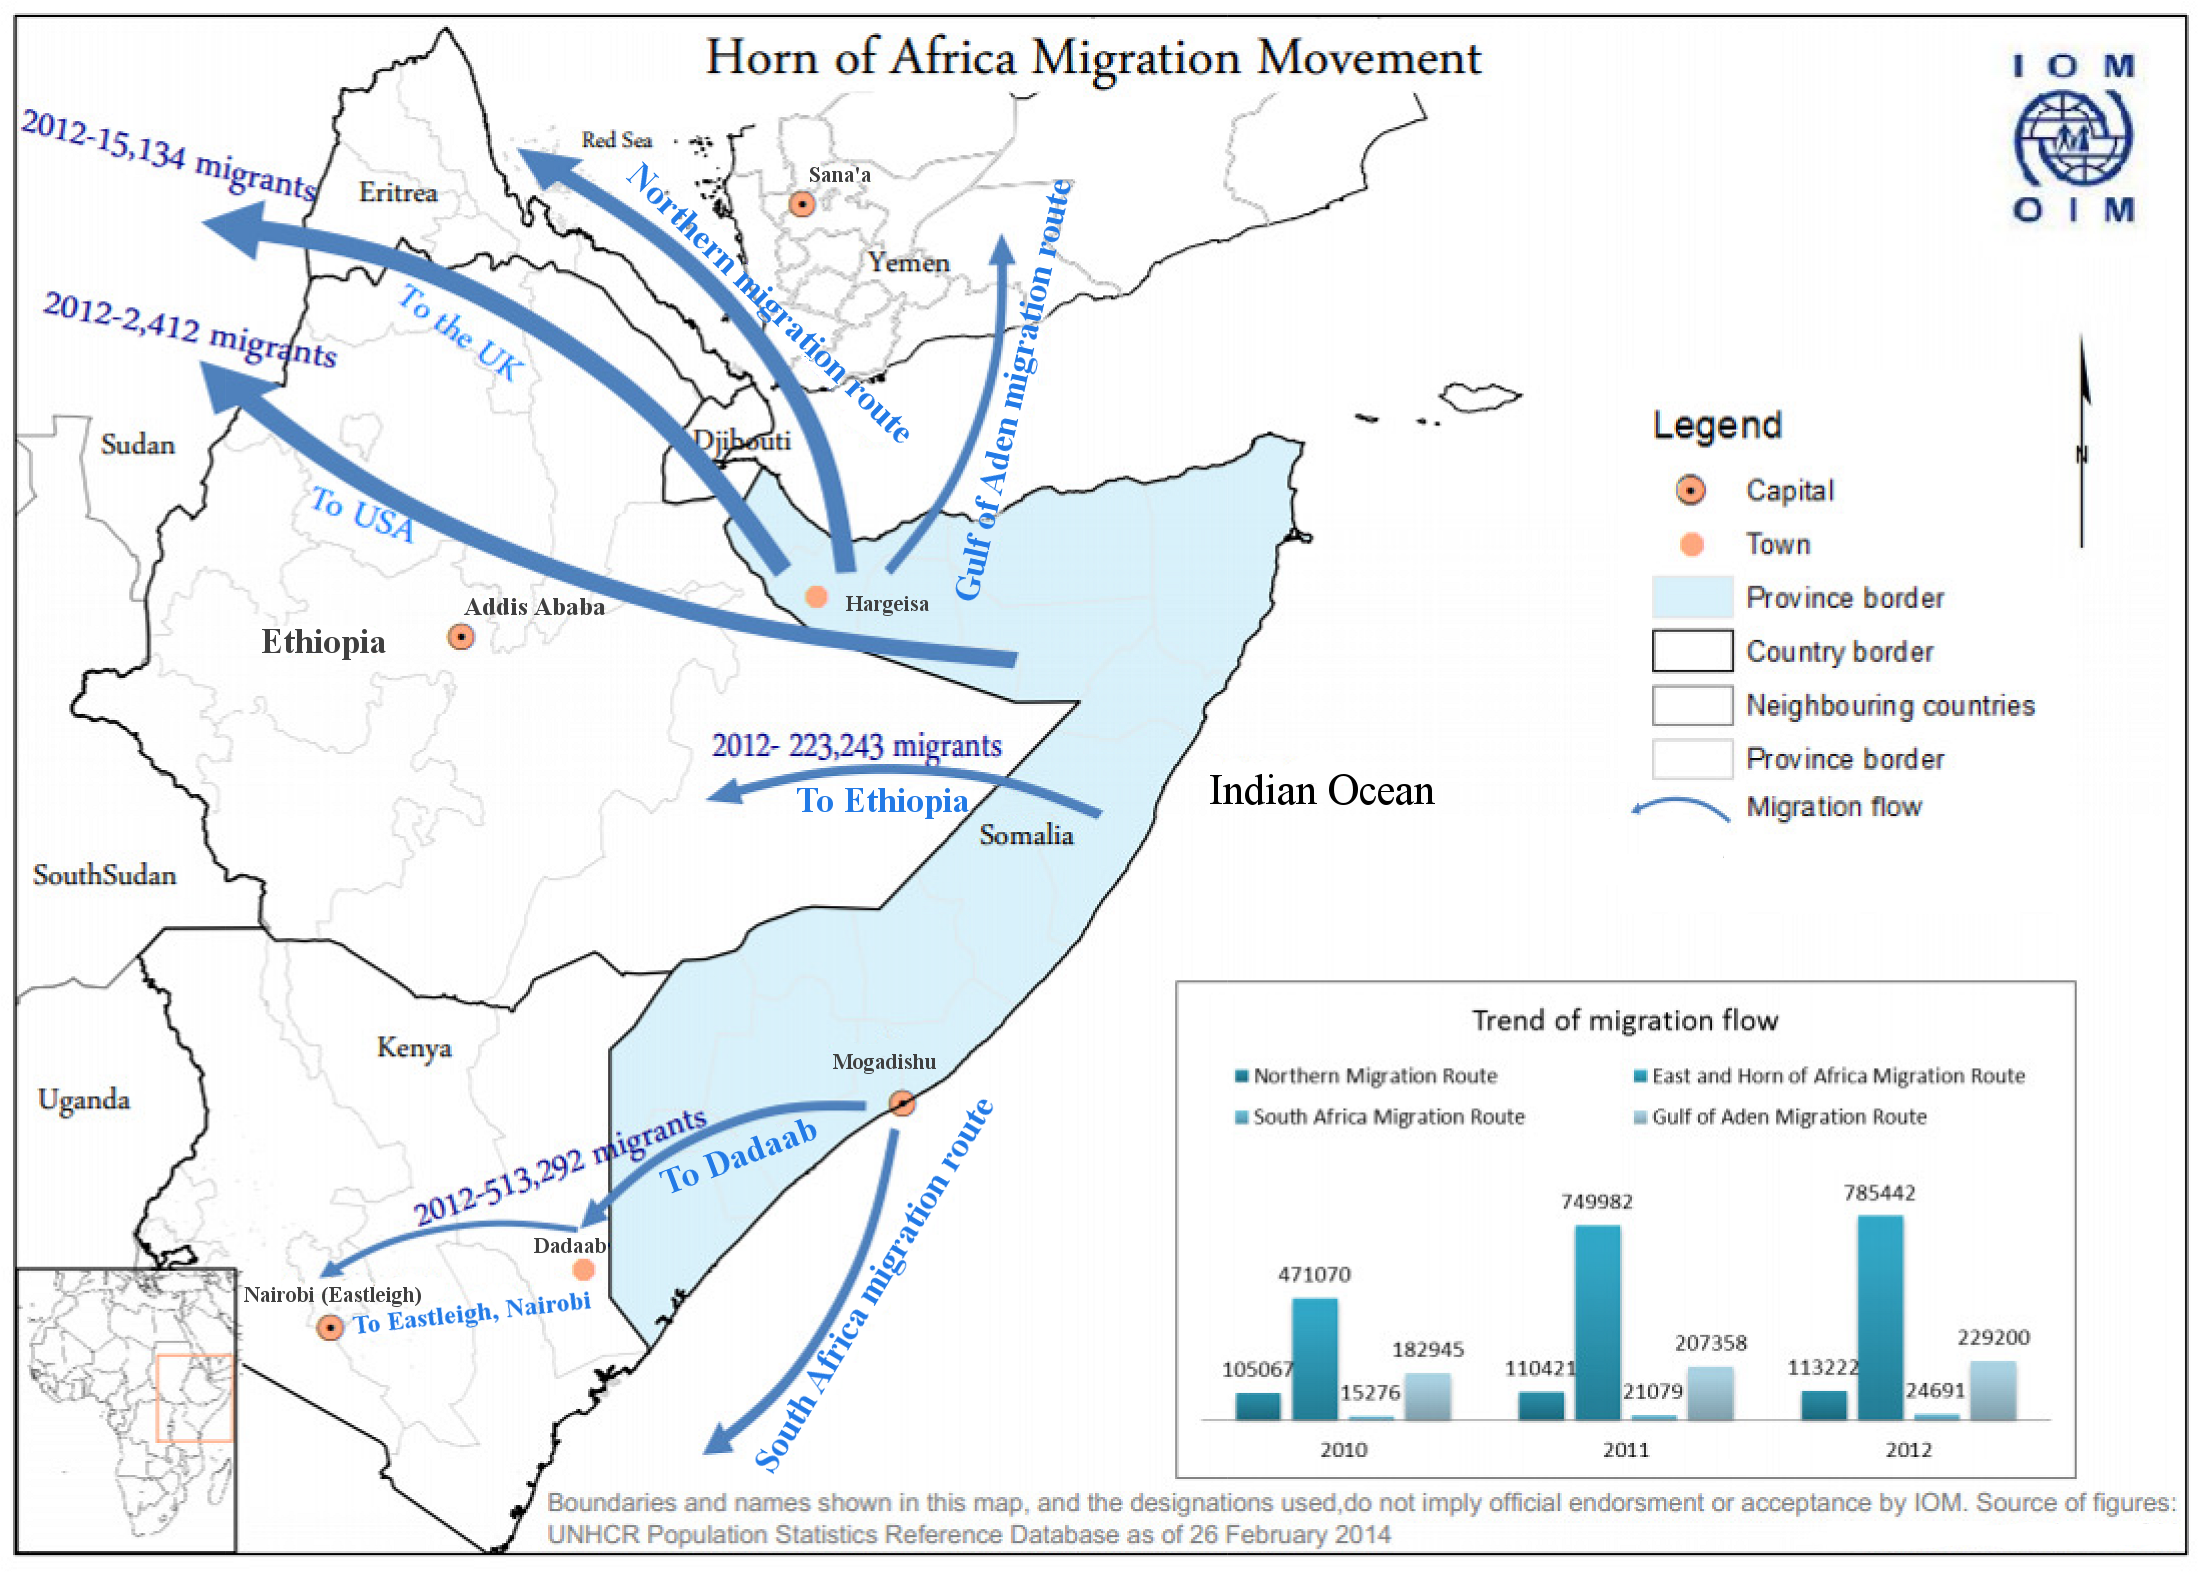 Map of Horn of Africa region showing key locations and also migration patterns for Somali refugees.